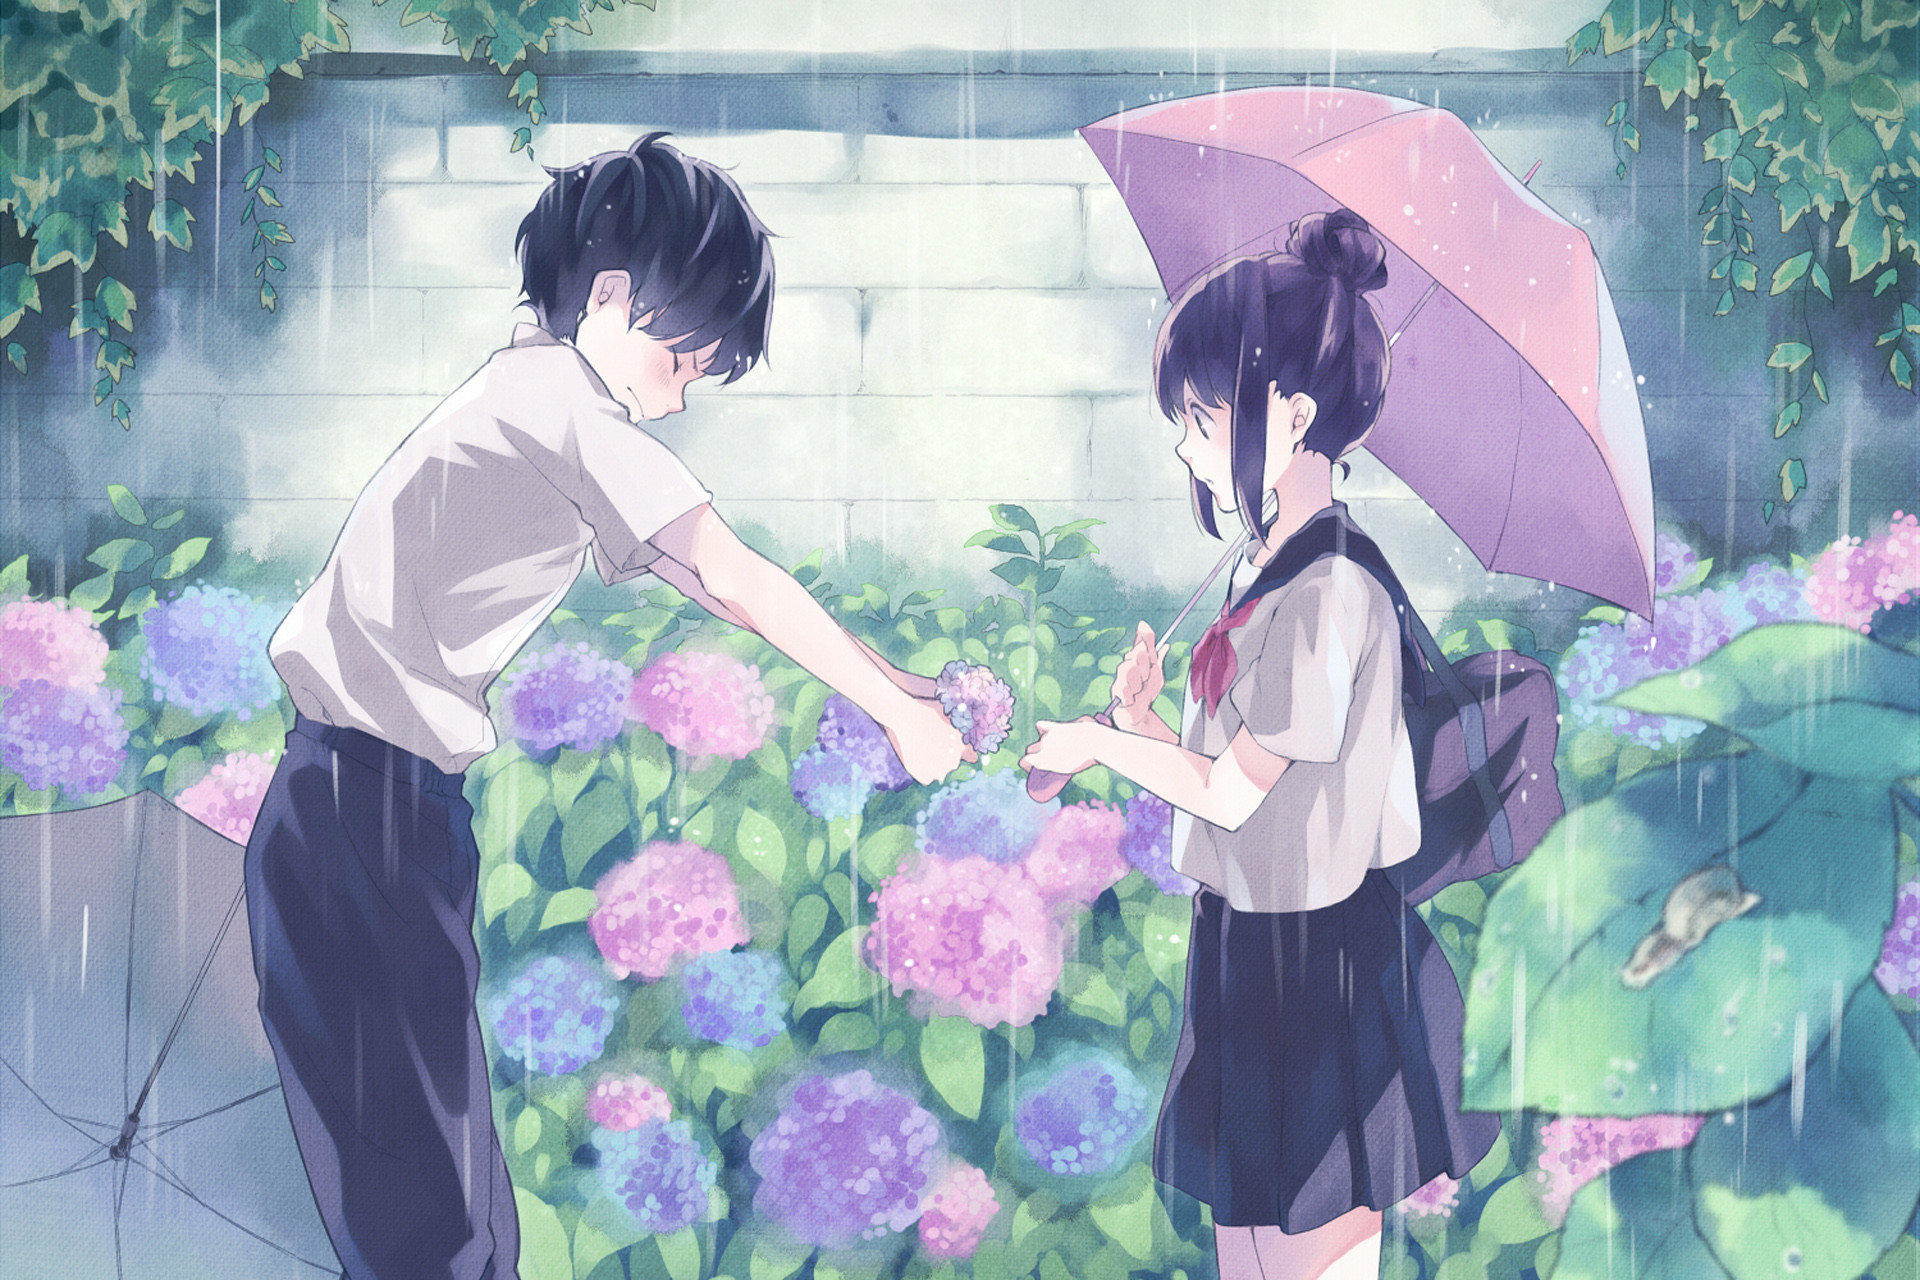 1920x1280 Hd Cute Anime Couple Background Desktop Wallpapers Cool Smart Phone Photos Download Free